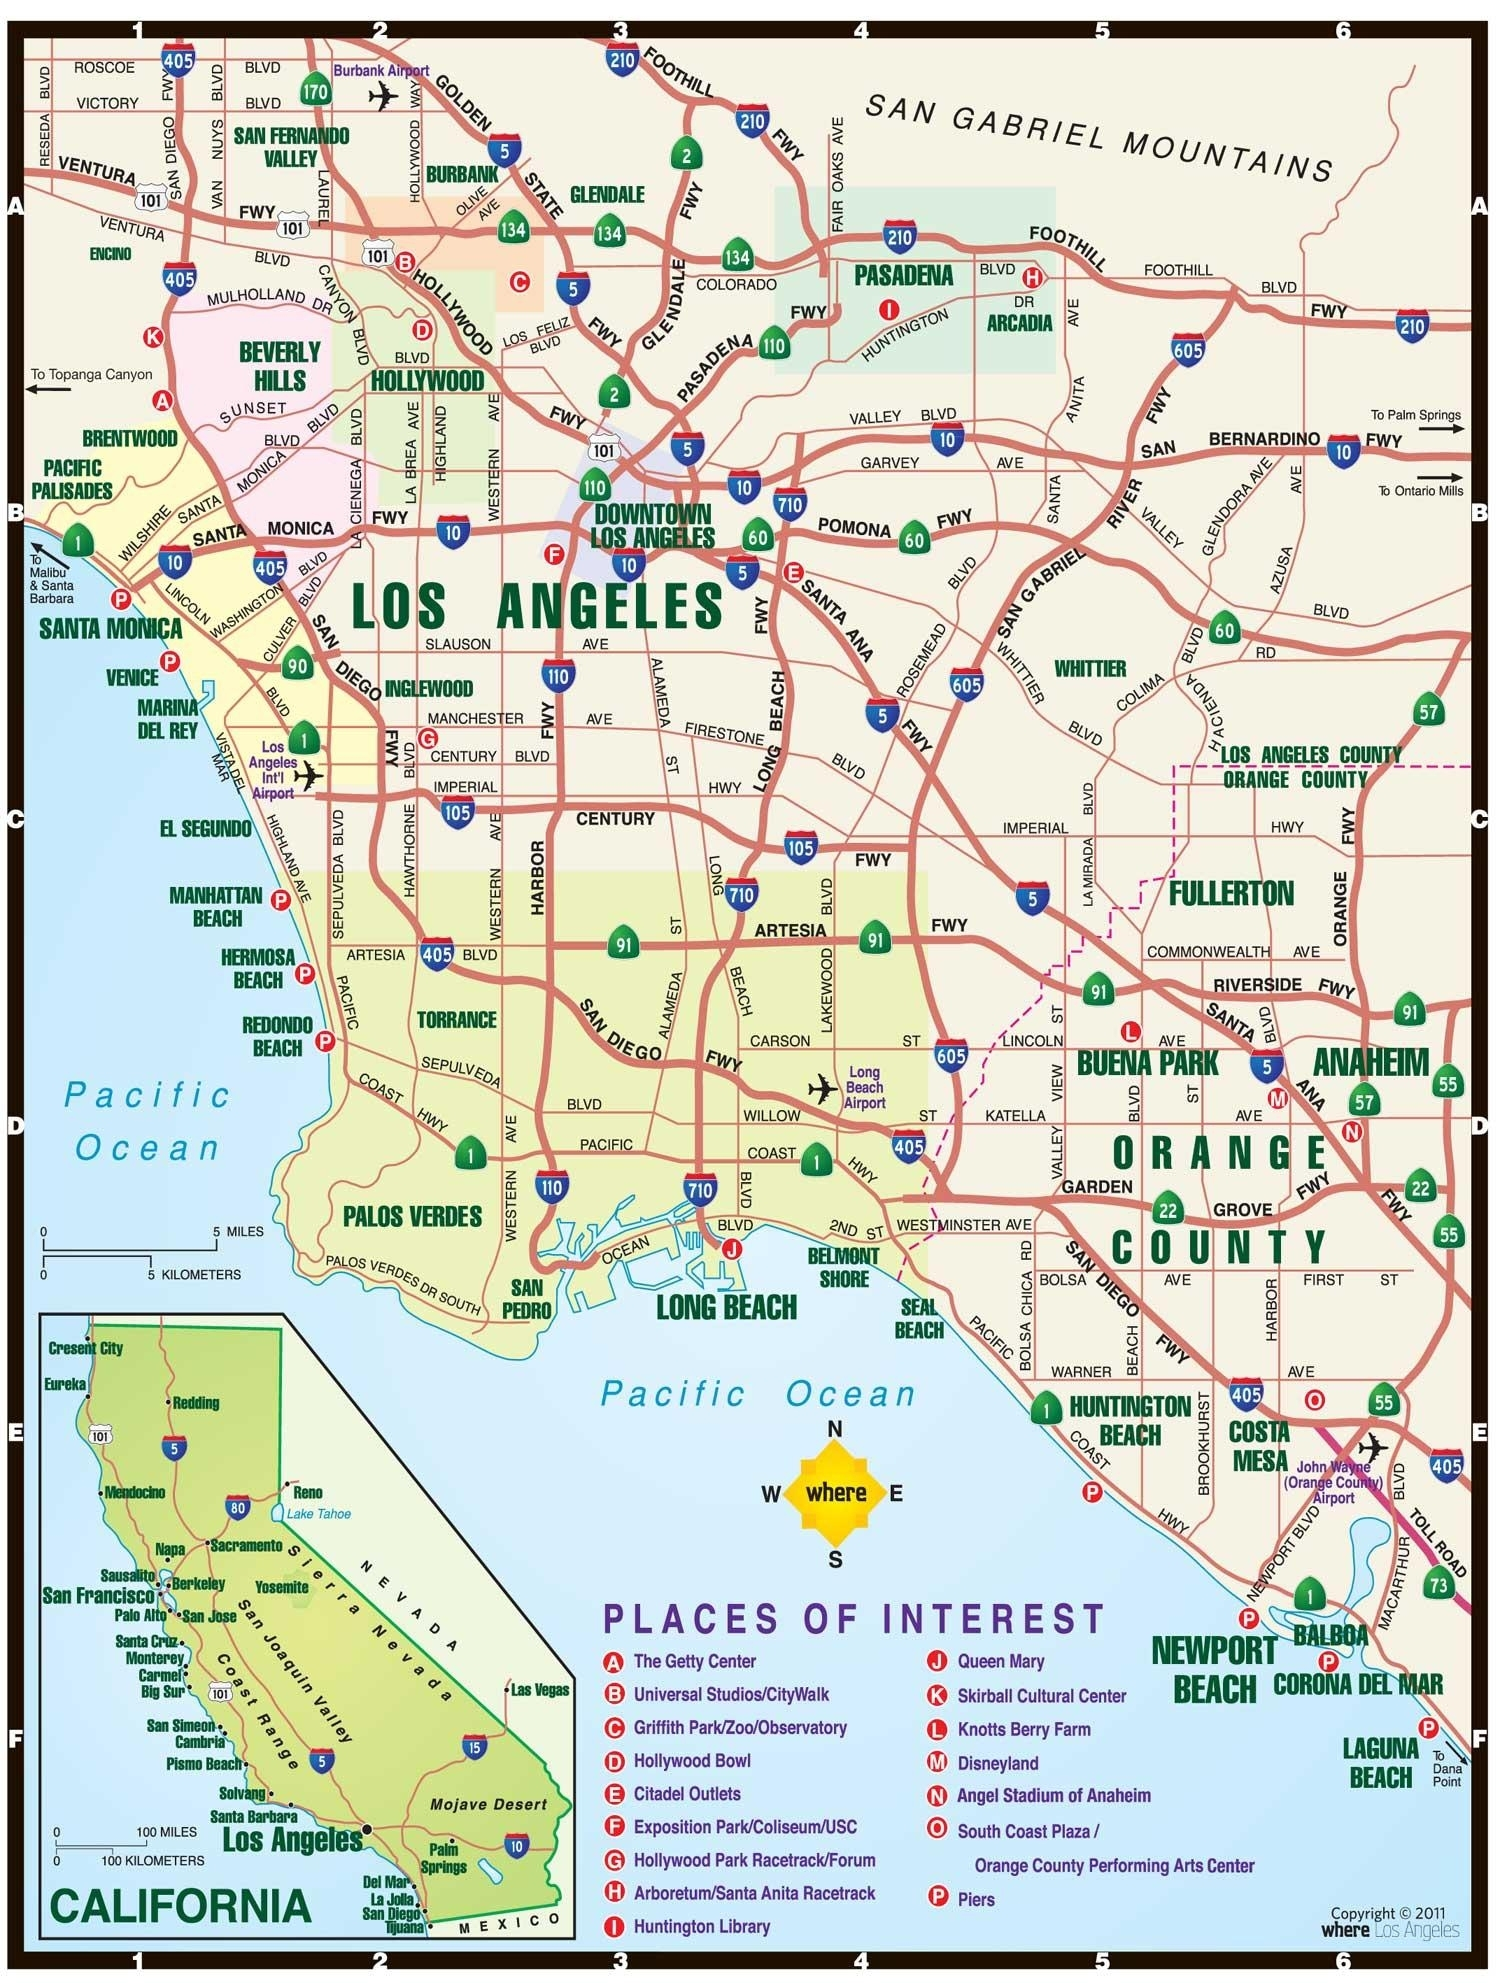 Los Angeles Toll Roads Map - Map Of Los Angeles Toll Roads inside Los Angeles Toll Road Map